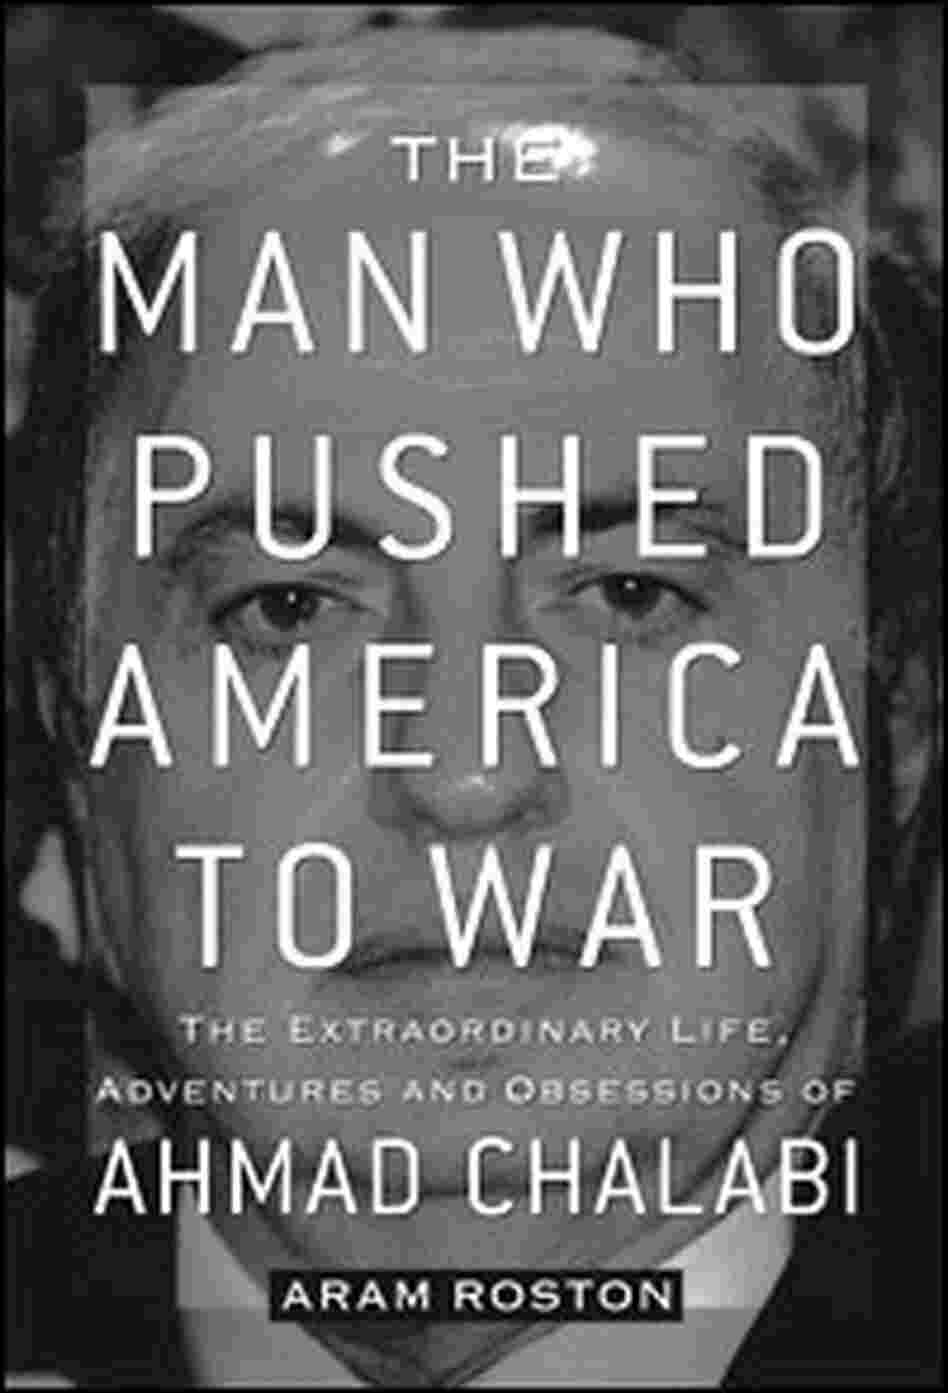 The Man Who Pushed America to War